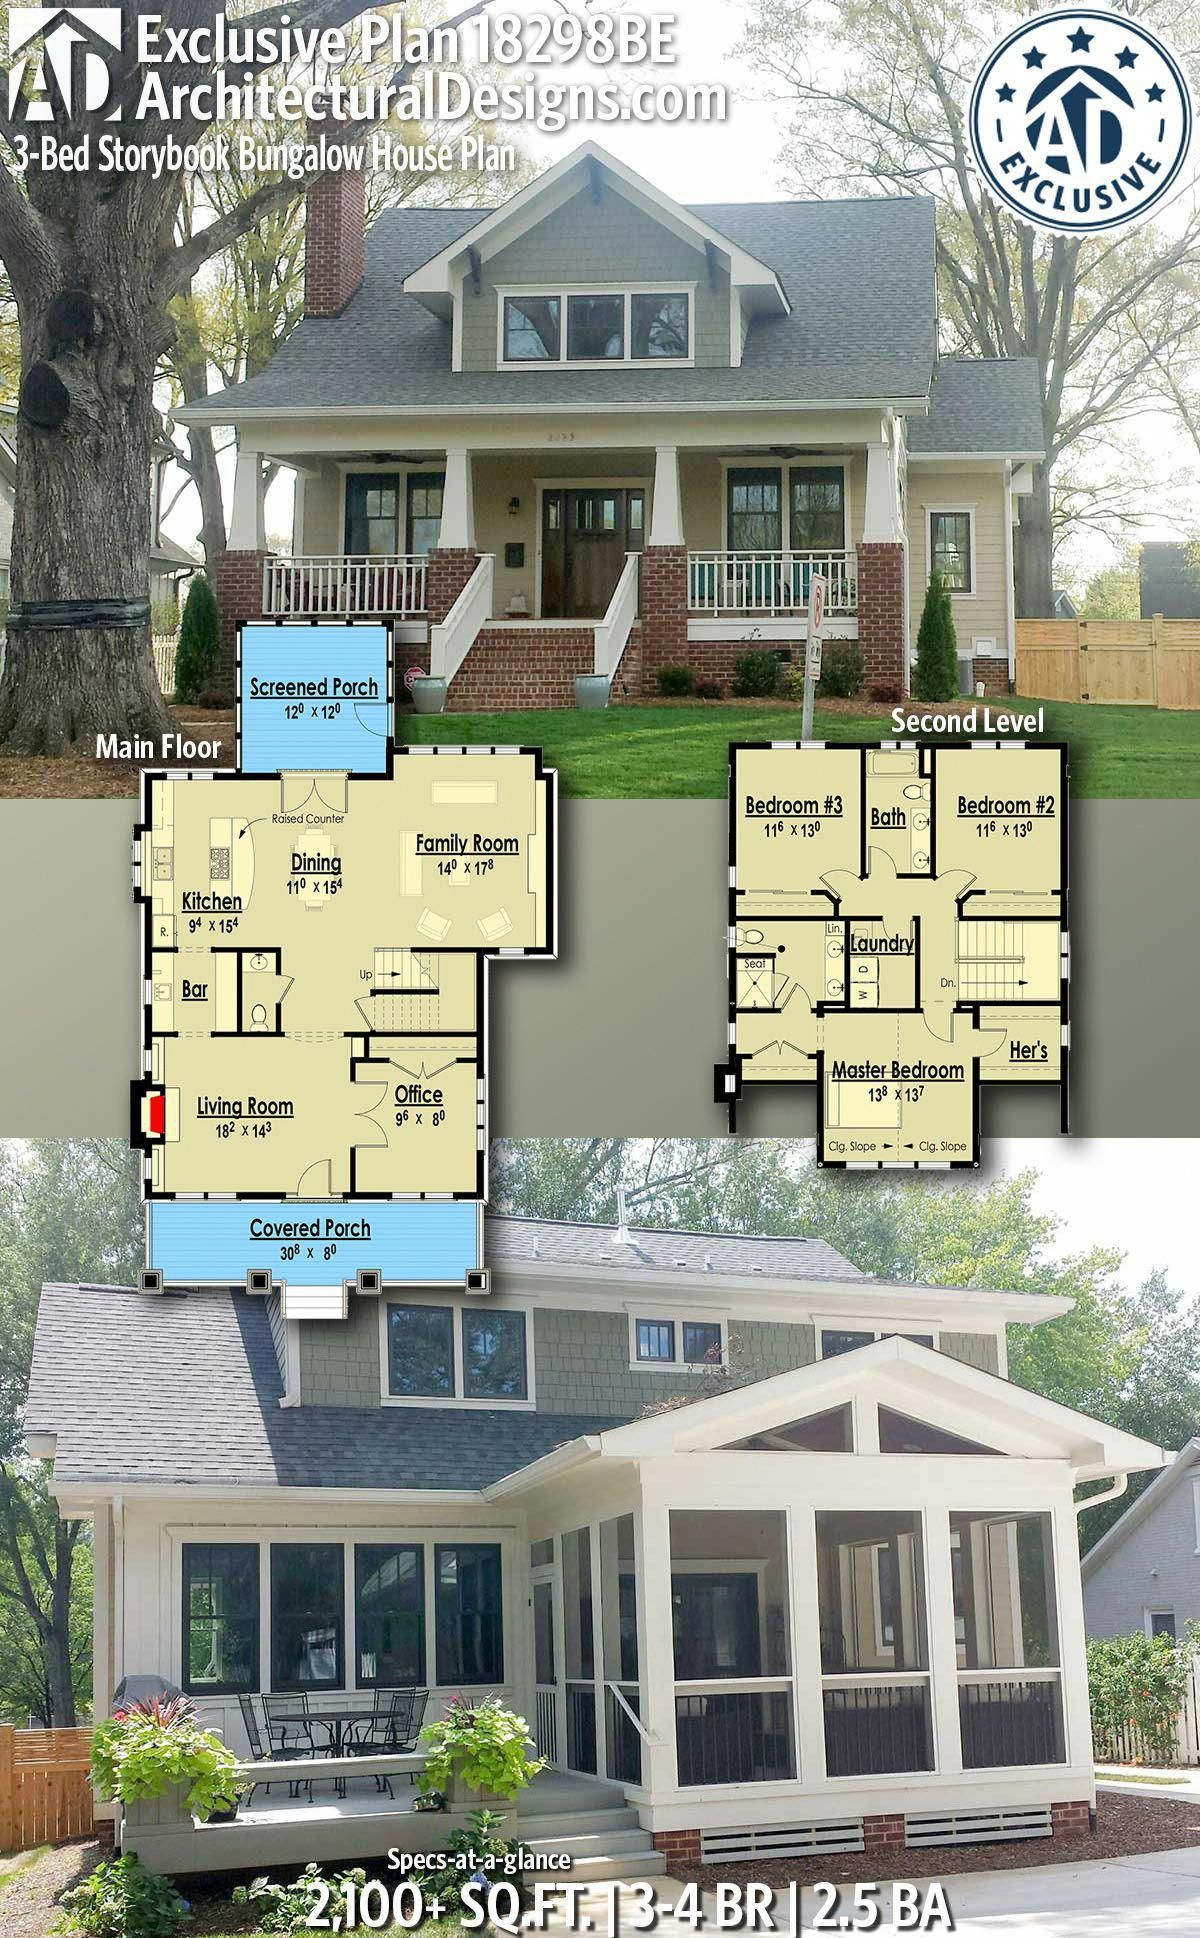 American Dream Homes Bighouses Storybook House Plan Bungalow House Plans Bungalow Homes